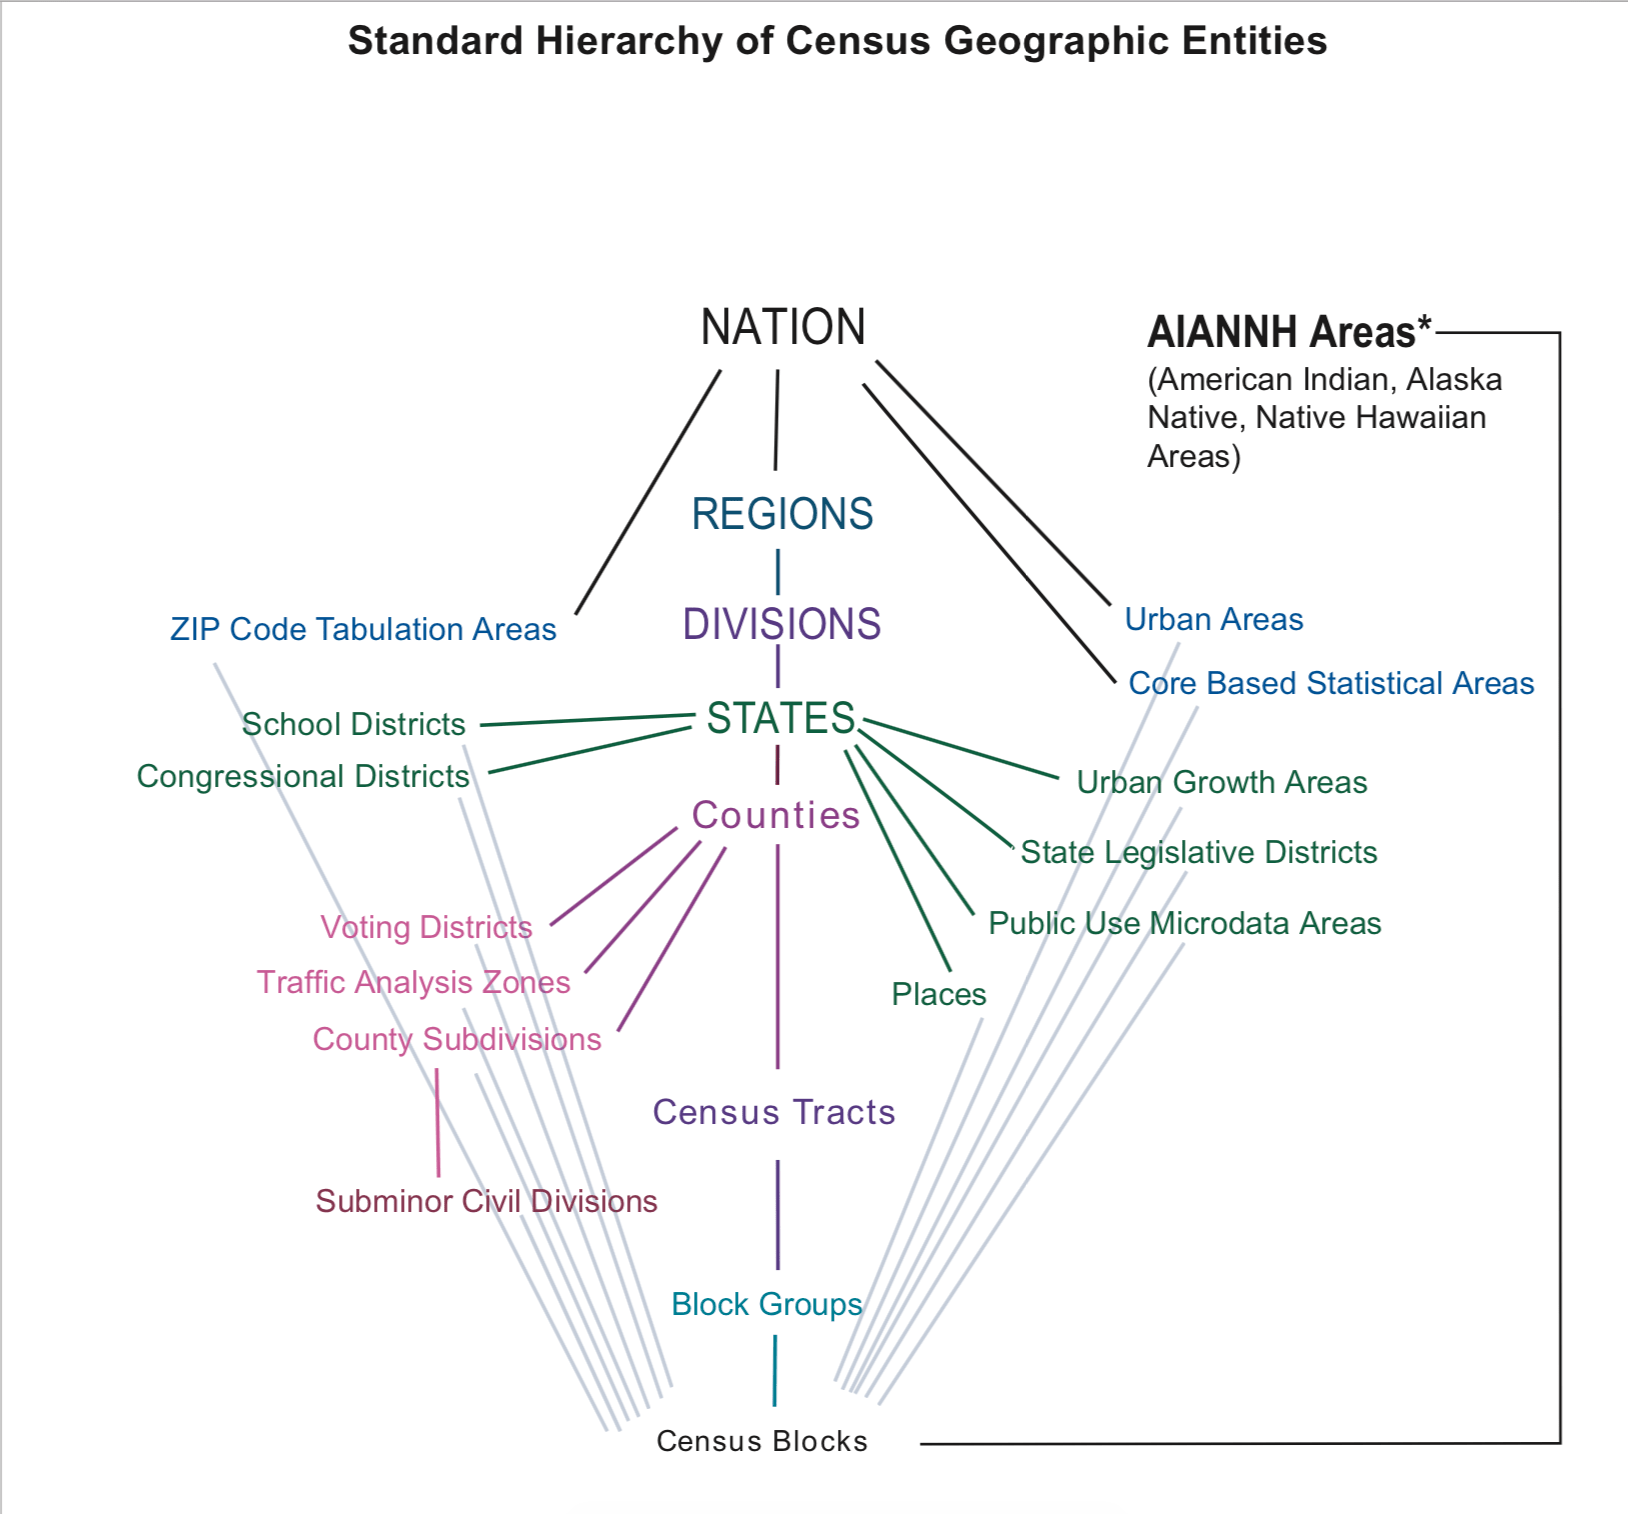 hight resolution of  source standard hierarchy of census geographic entities